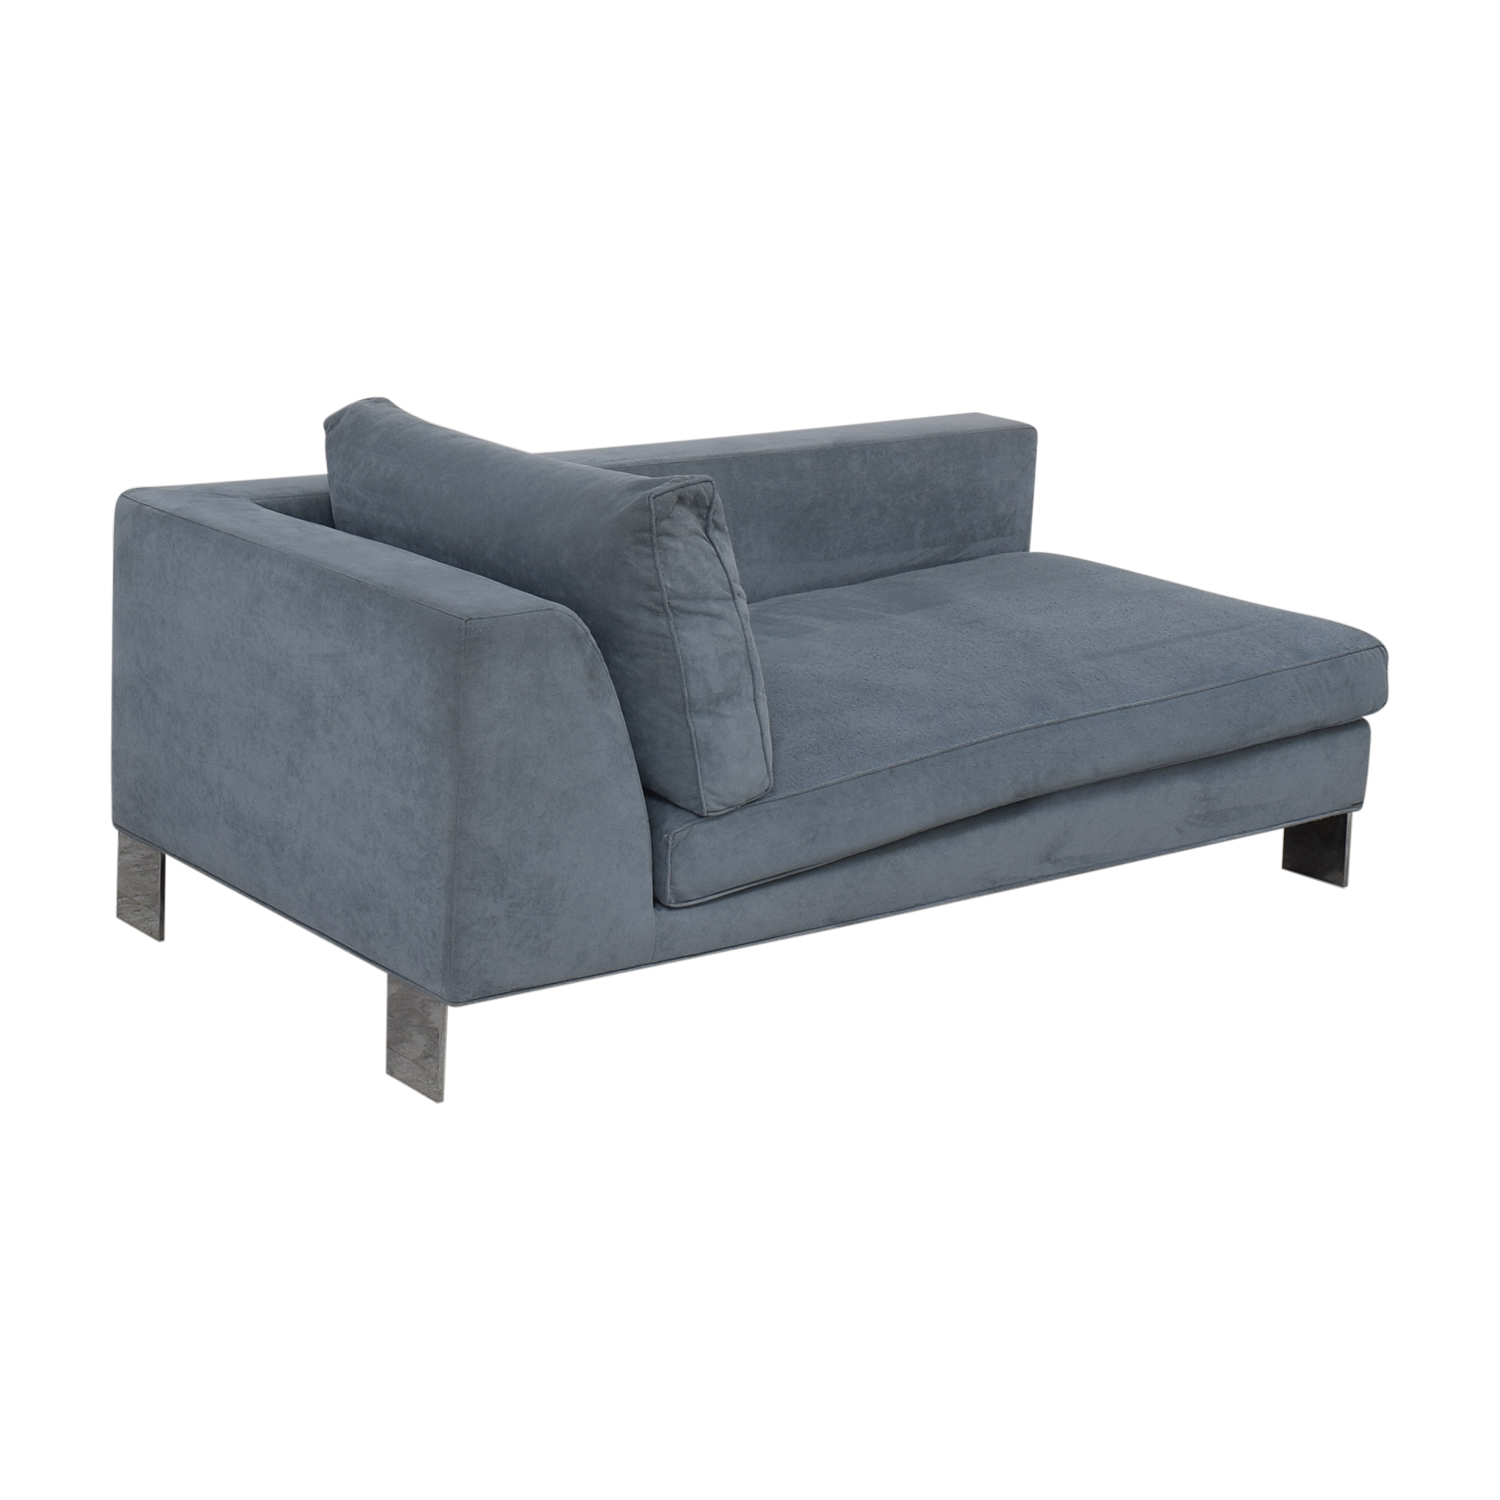 Chaises Discount 87 Off Minotti Minotti Light Blue Ultrasuede Chaise Sofas